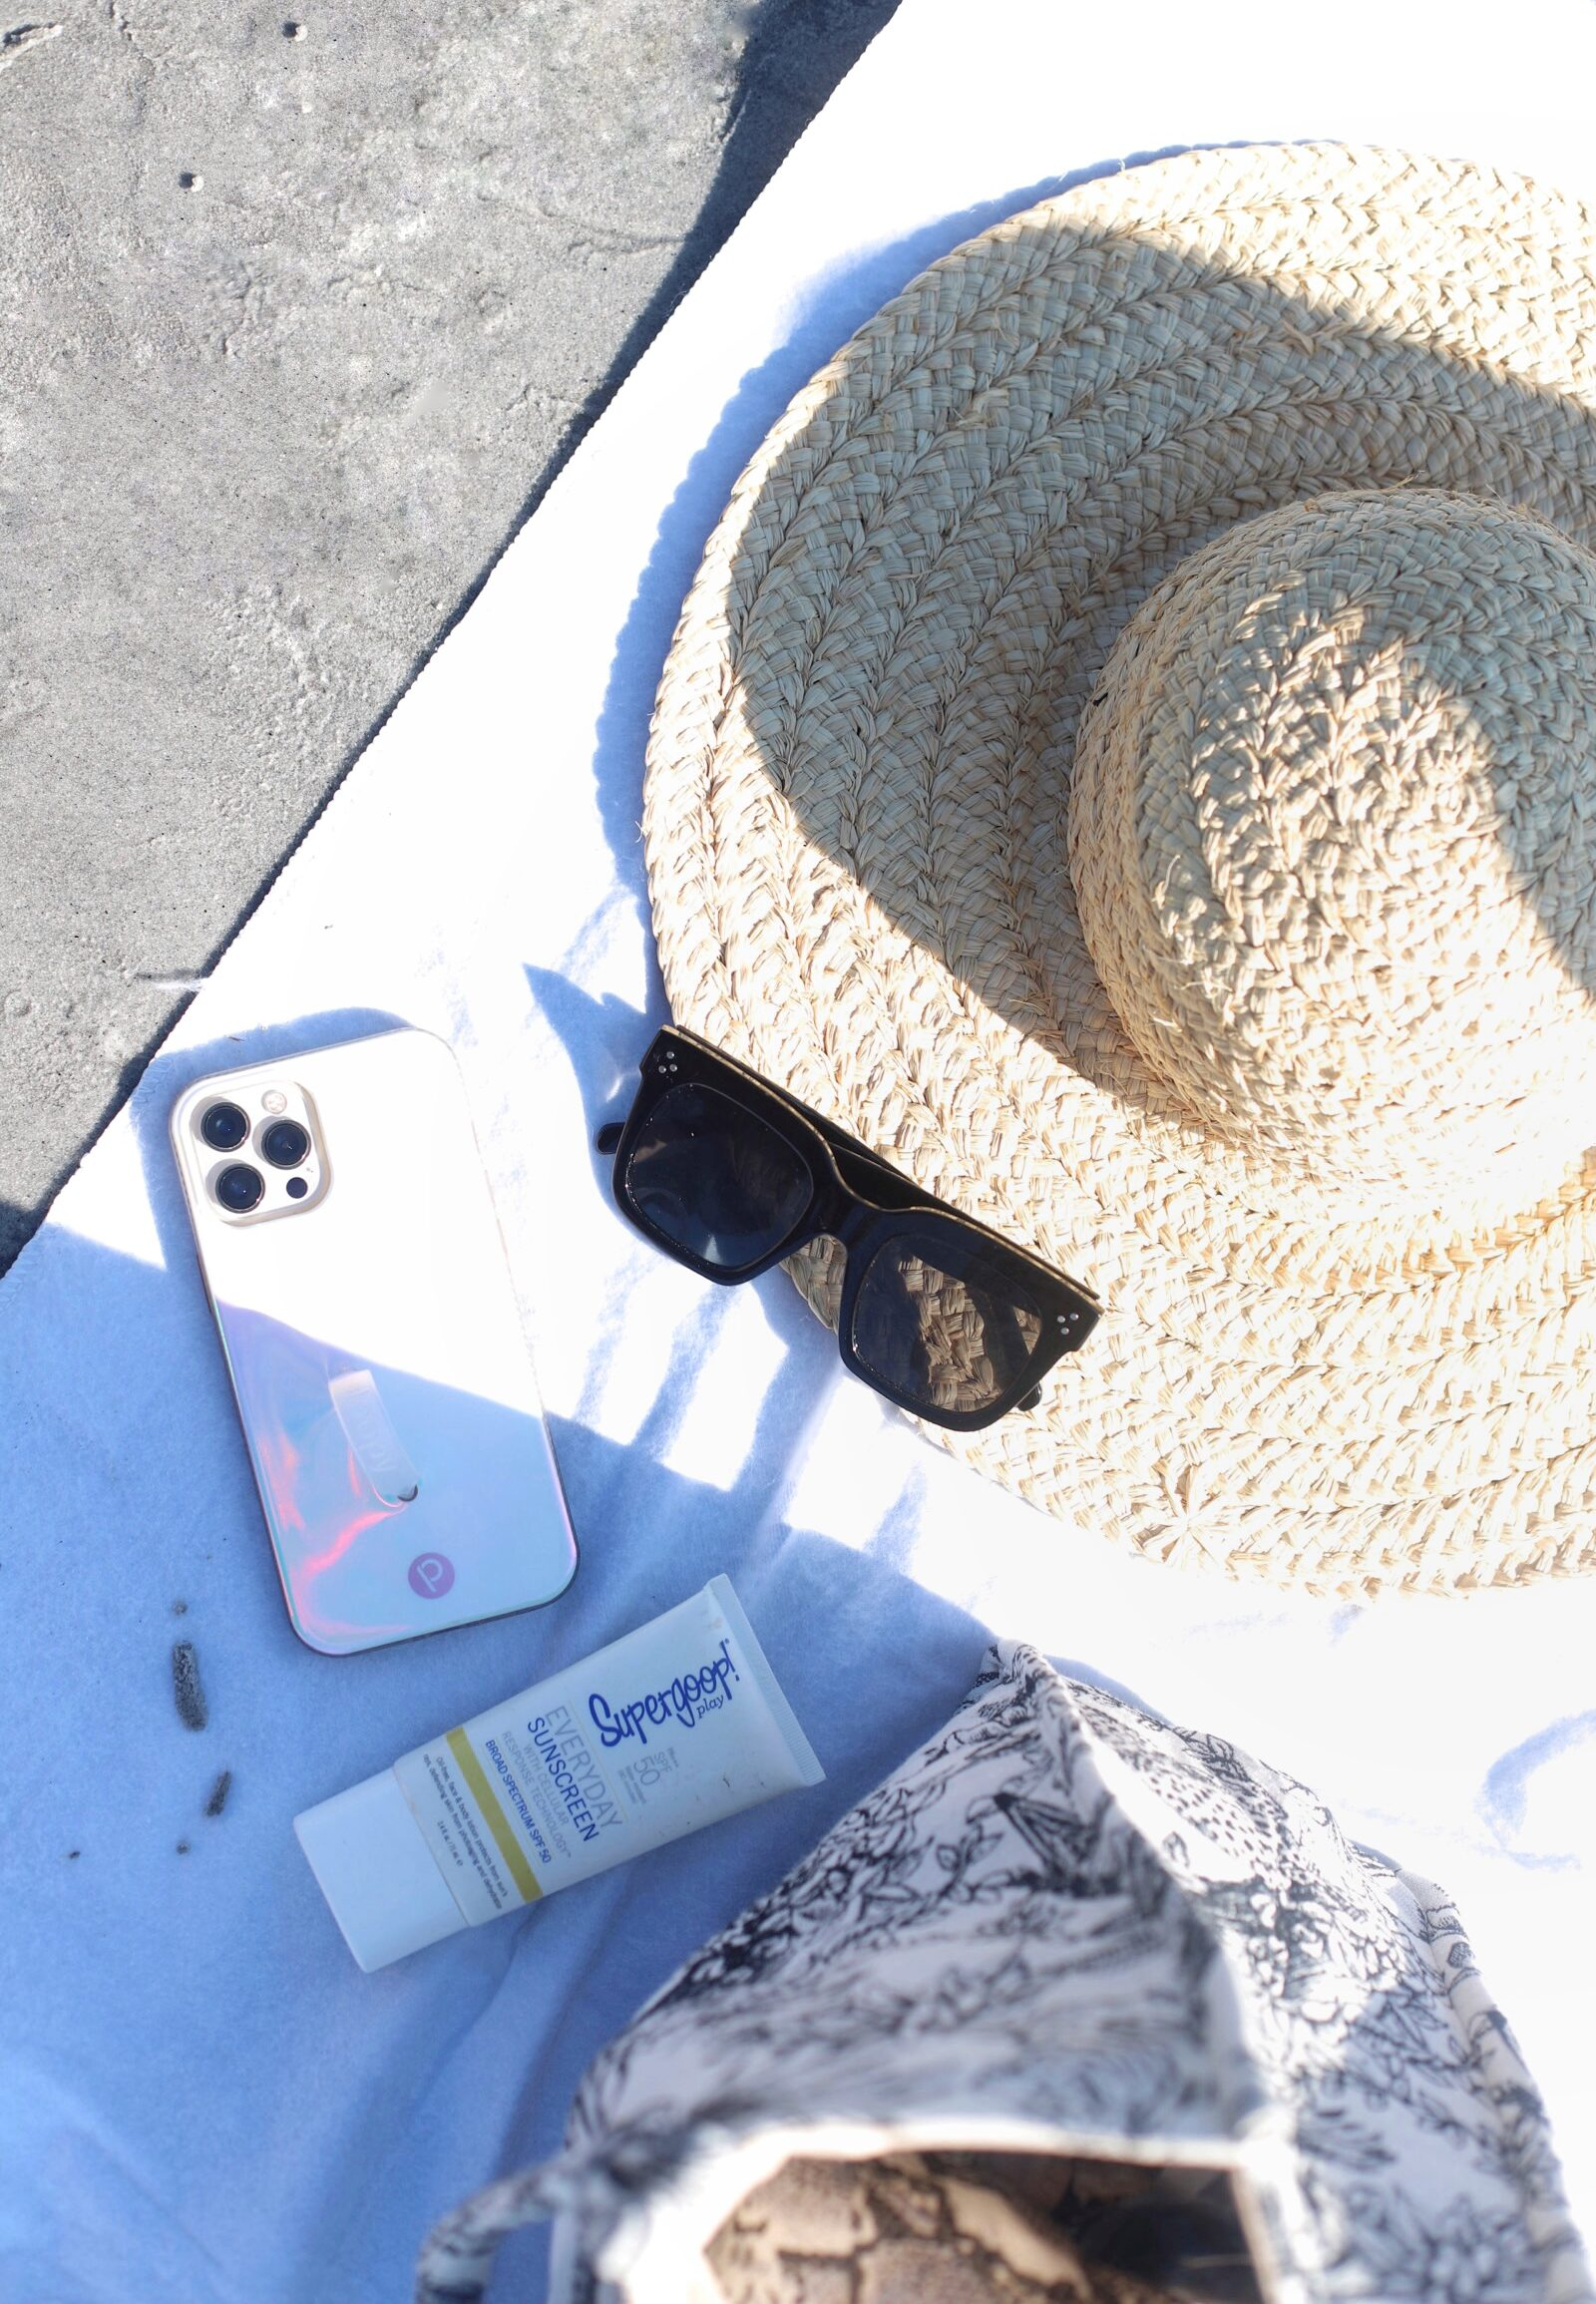 straw hat, favorite sunglasses from Amazon, sunblock, and phone